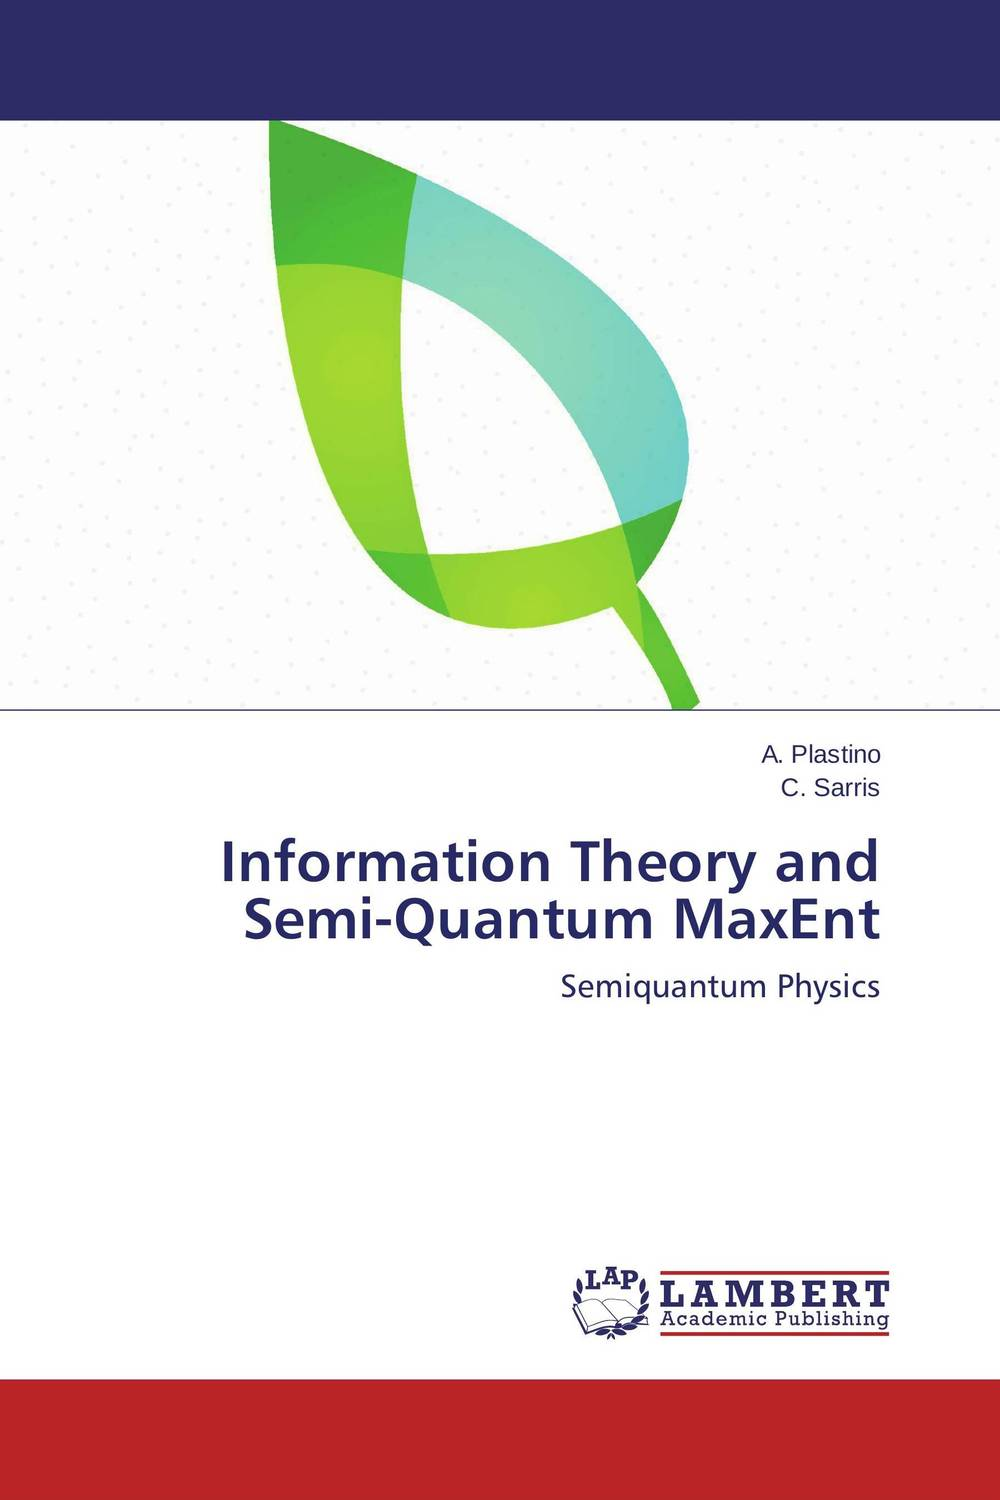 Information Theory and Semi-Quantum MaxEnt салатник кутюр 27см 791956